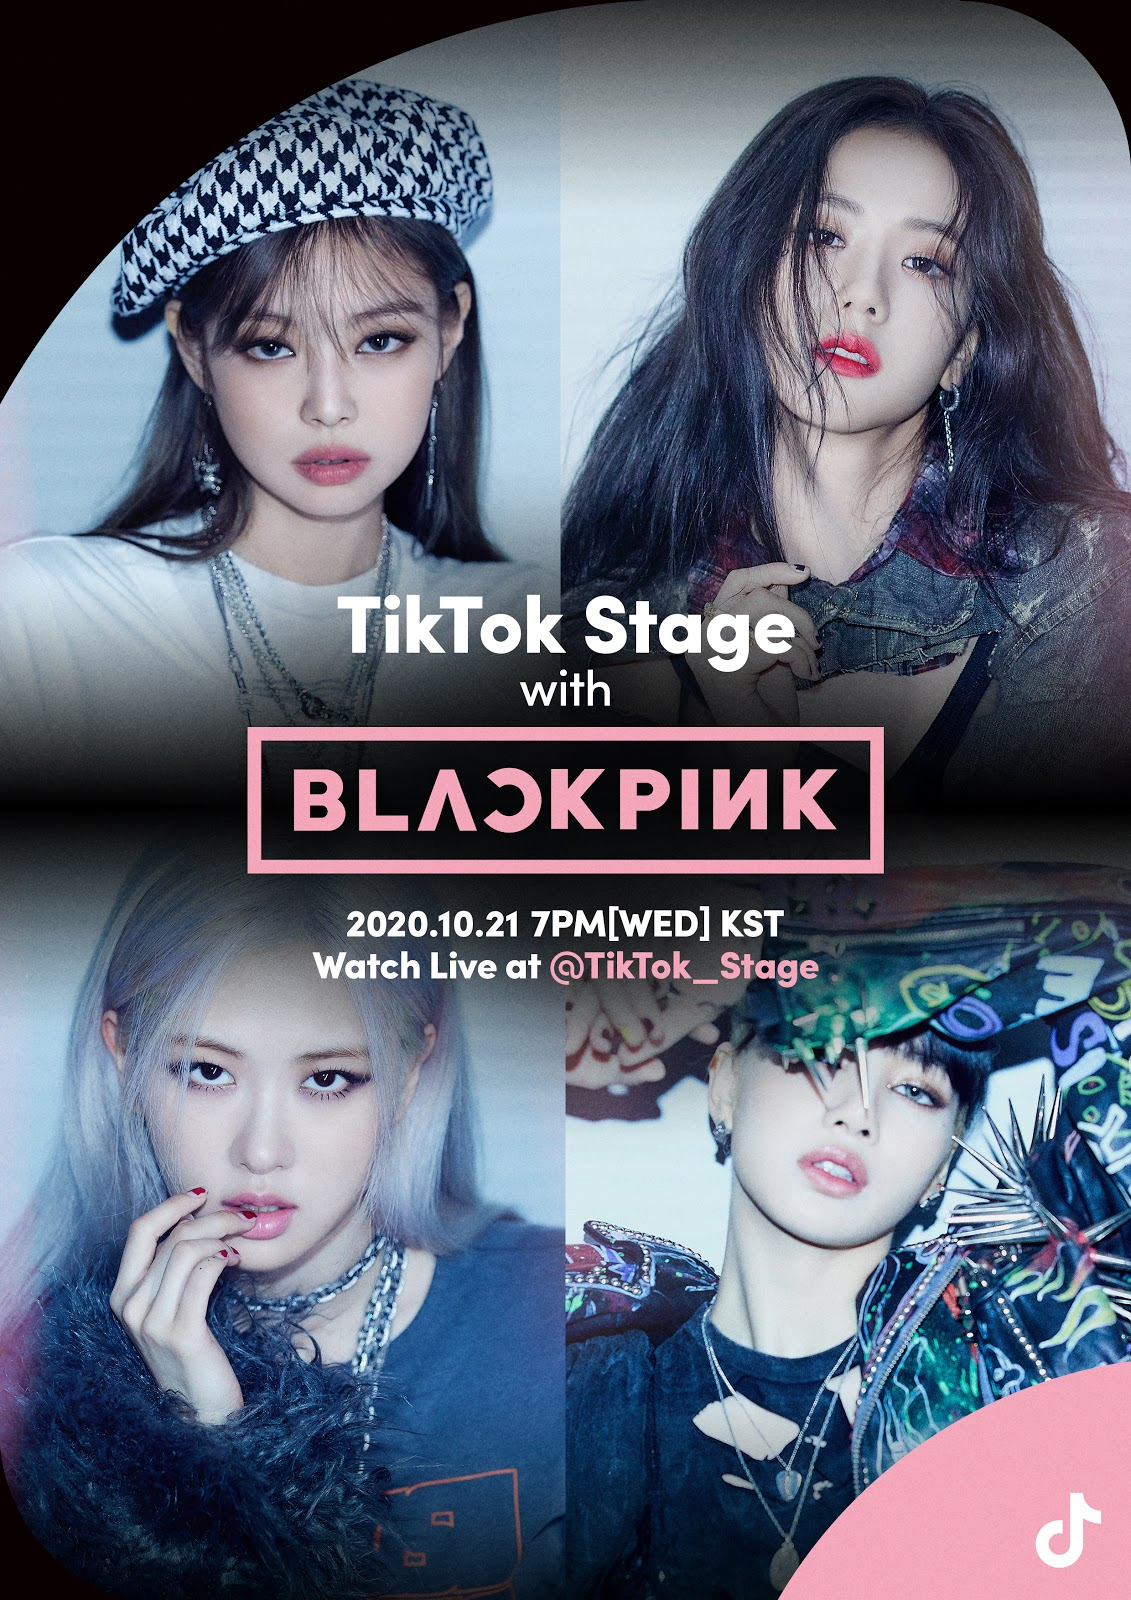 Connect with BLACKPINK on 'TikTok Stage'! this Wednesday, October 21